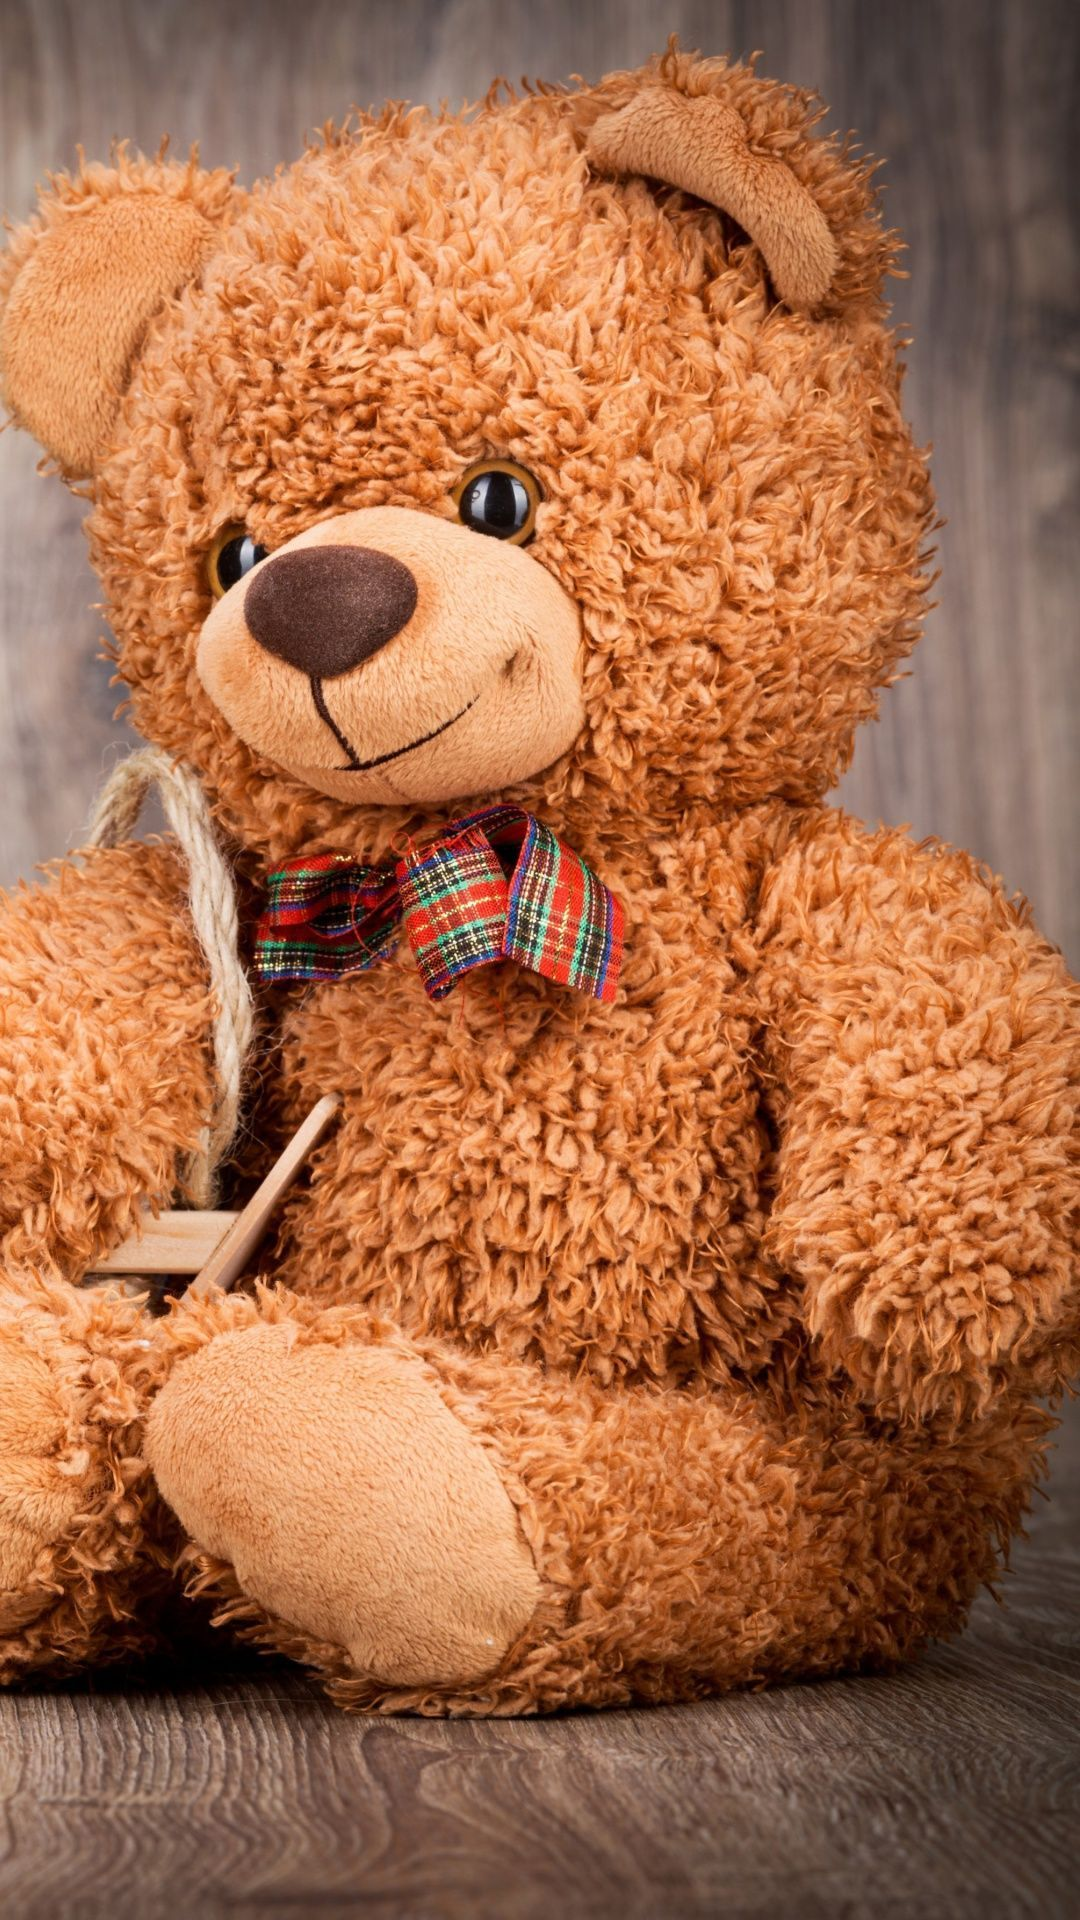 Couple Teddy Bear Images Photo Pics Pictures Teddy Bear Wallpaper Teddy Bear Images Teddy Bear Pictures